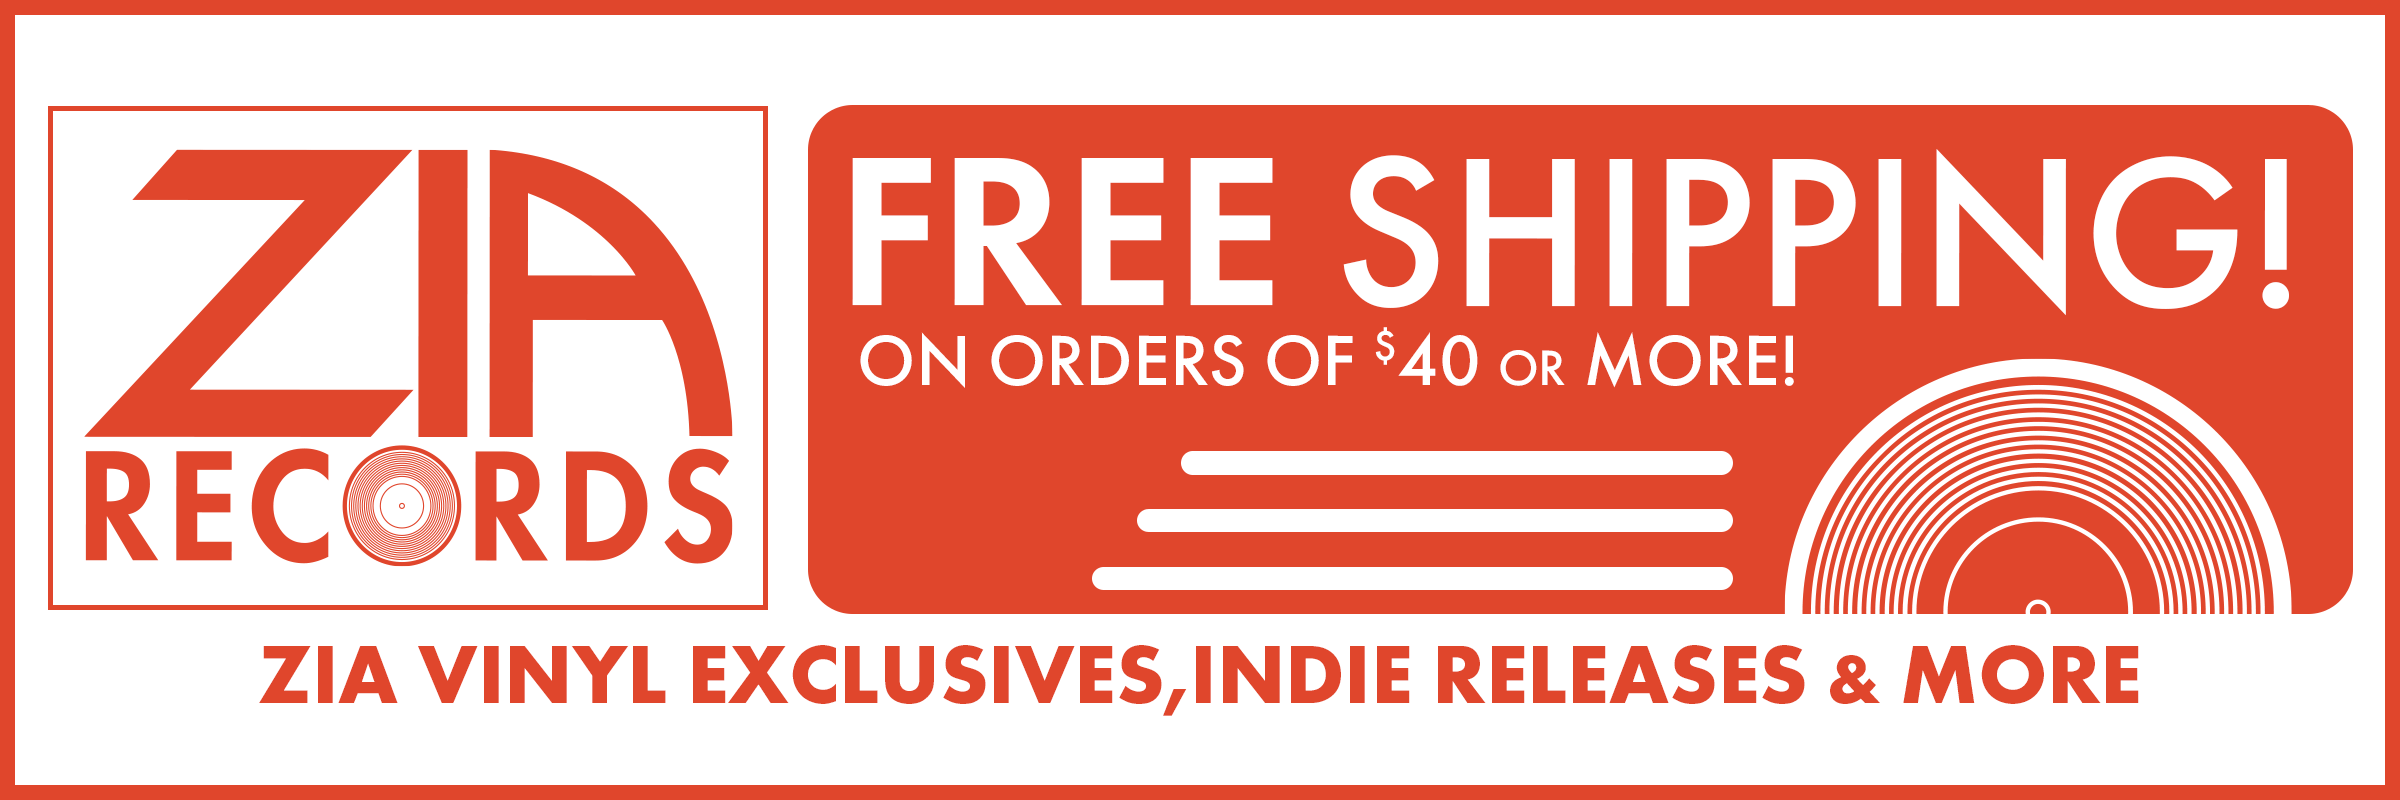 Free Shipping Over 30 banner